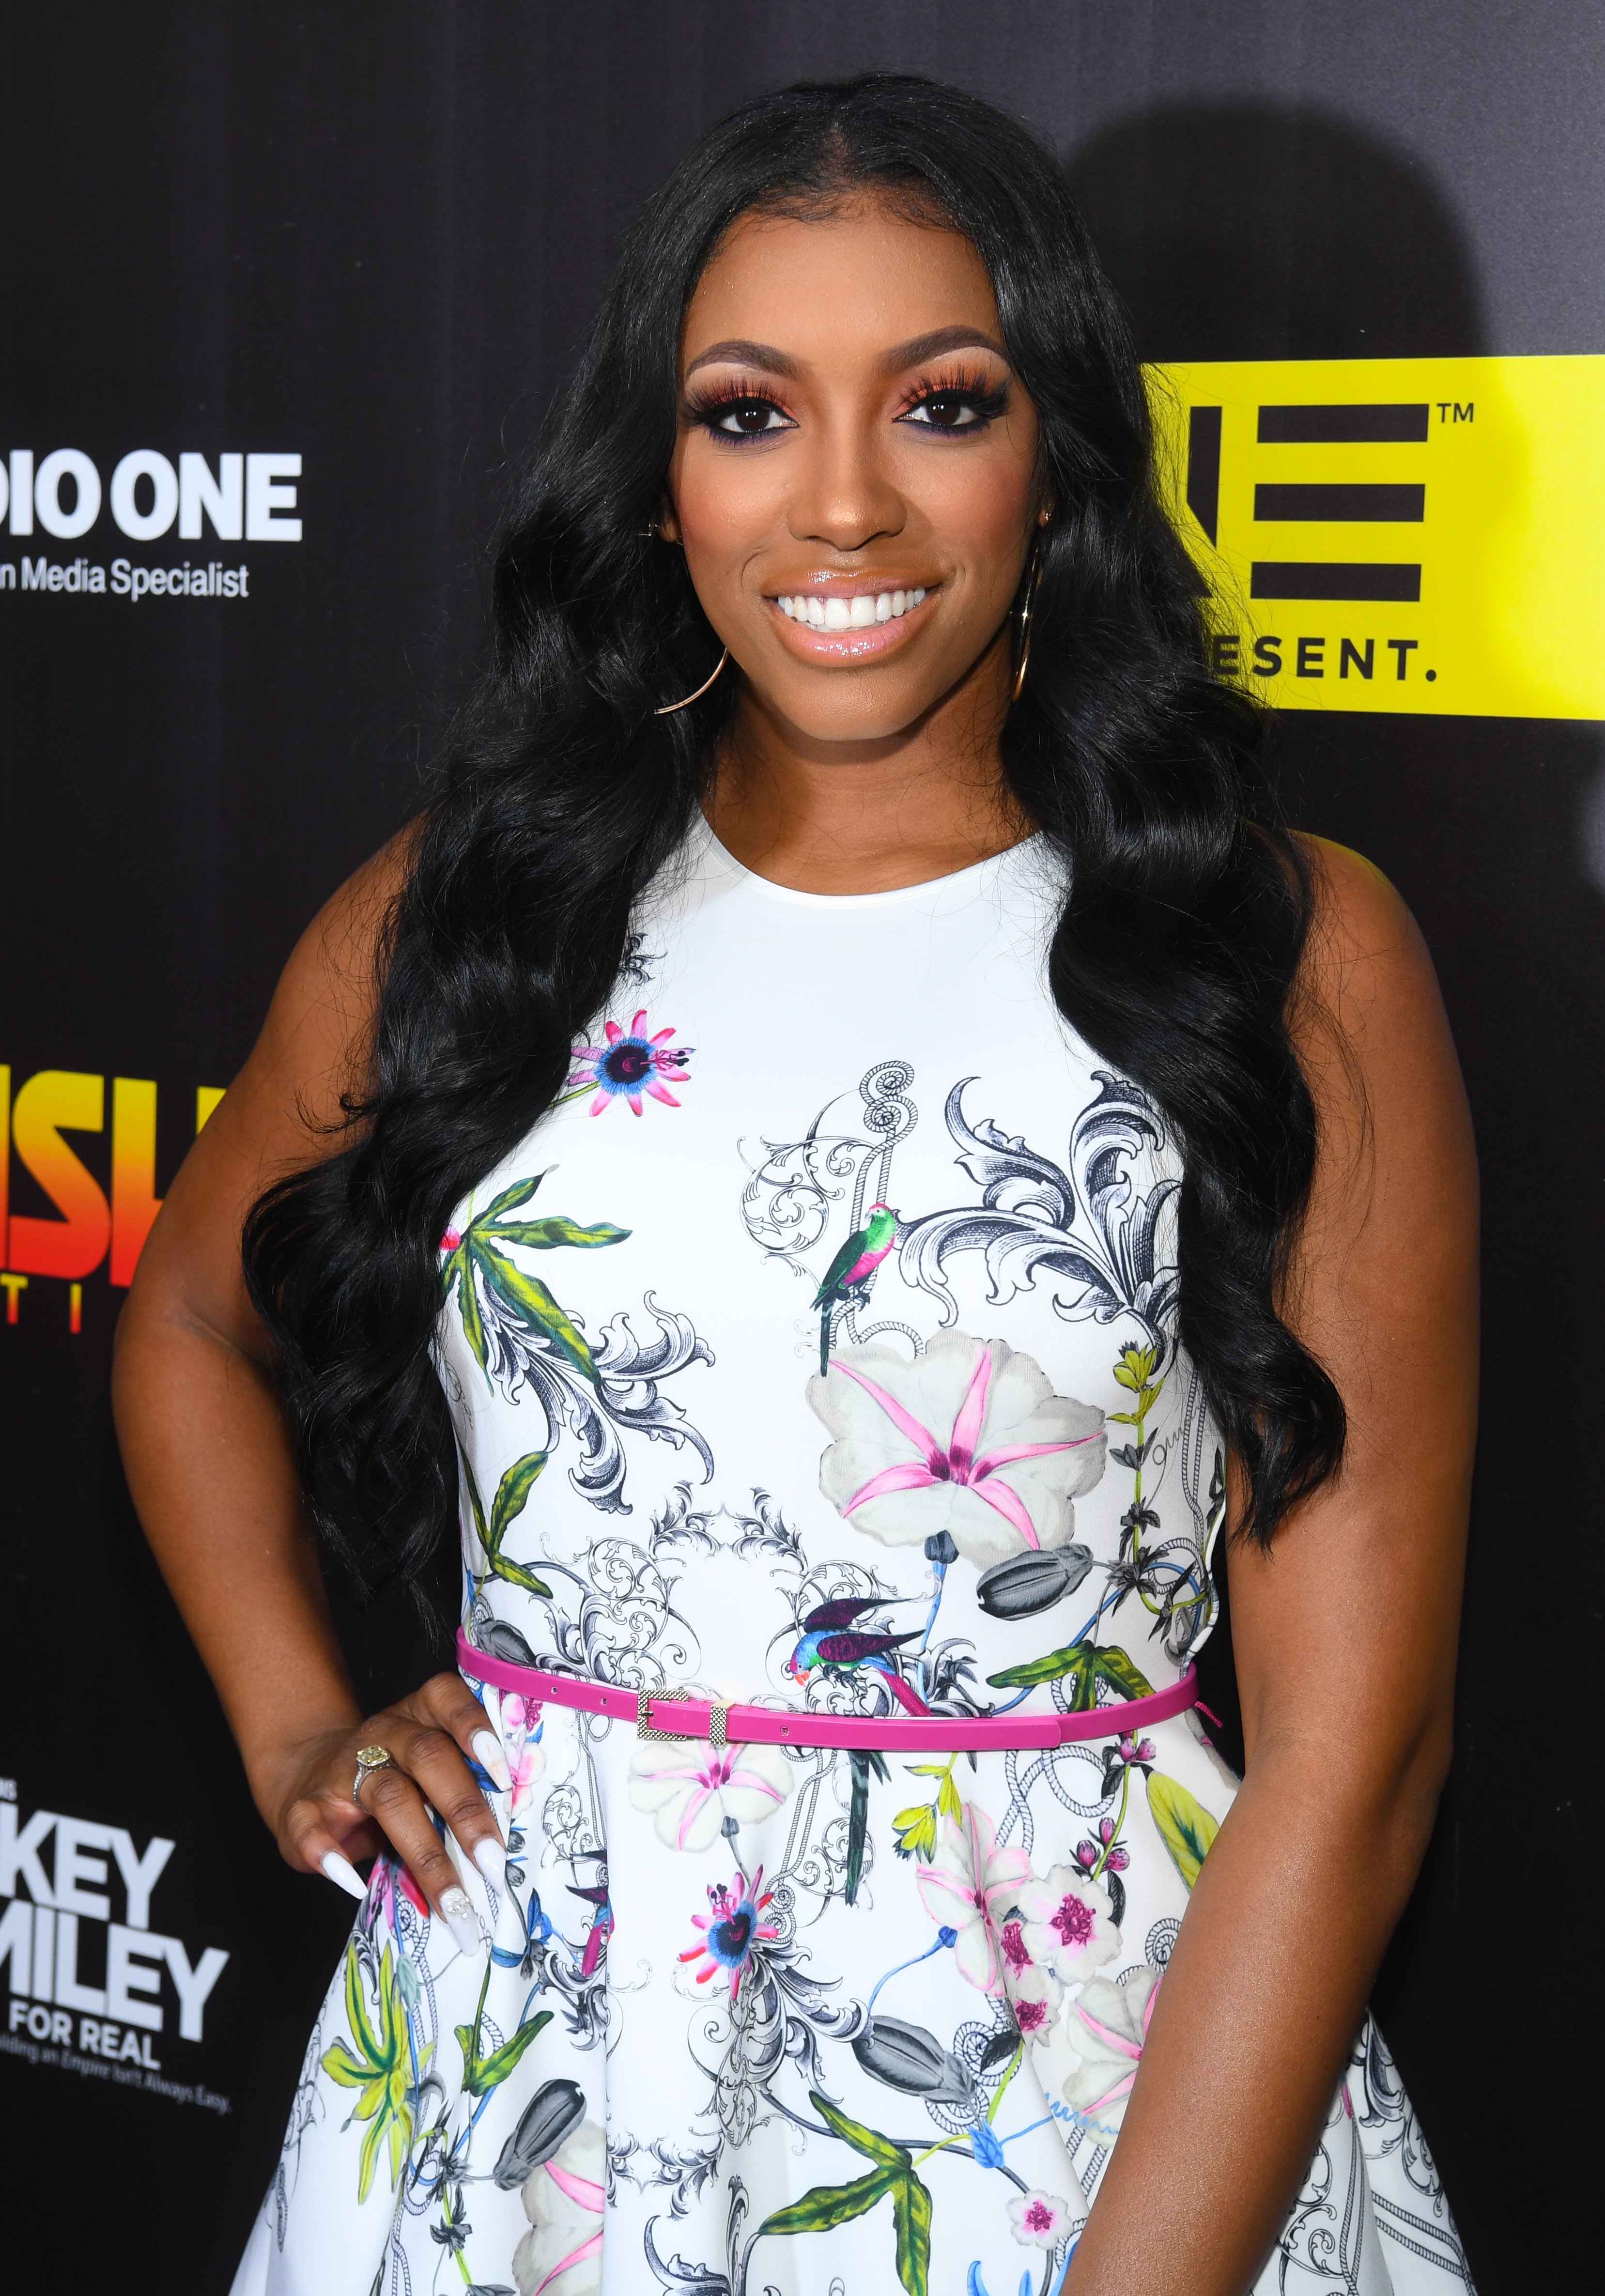 """Porsha Williams attends """"Rickey Smiley For Real"""" Season 4 Premiere at Regal Atlantic Station on June 13, 2017 